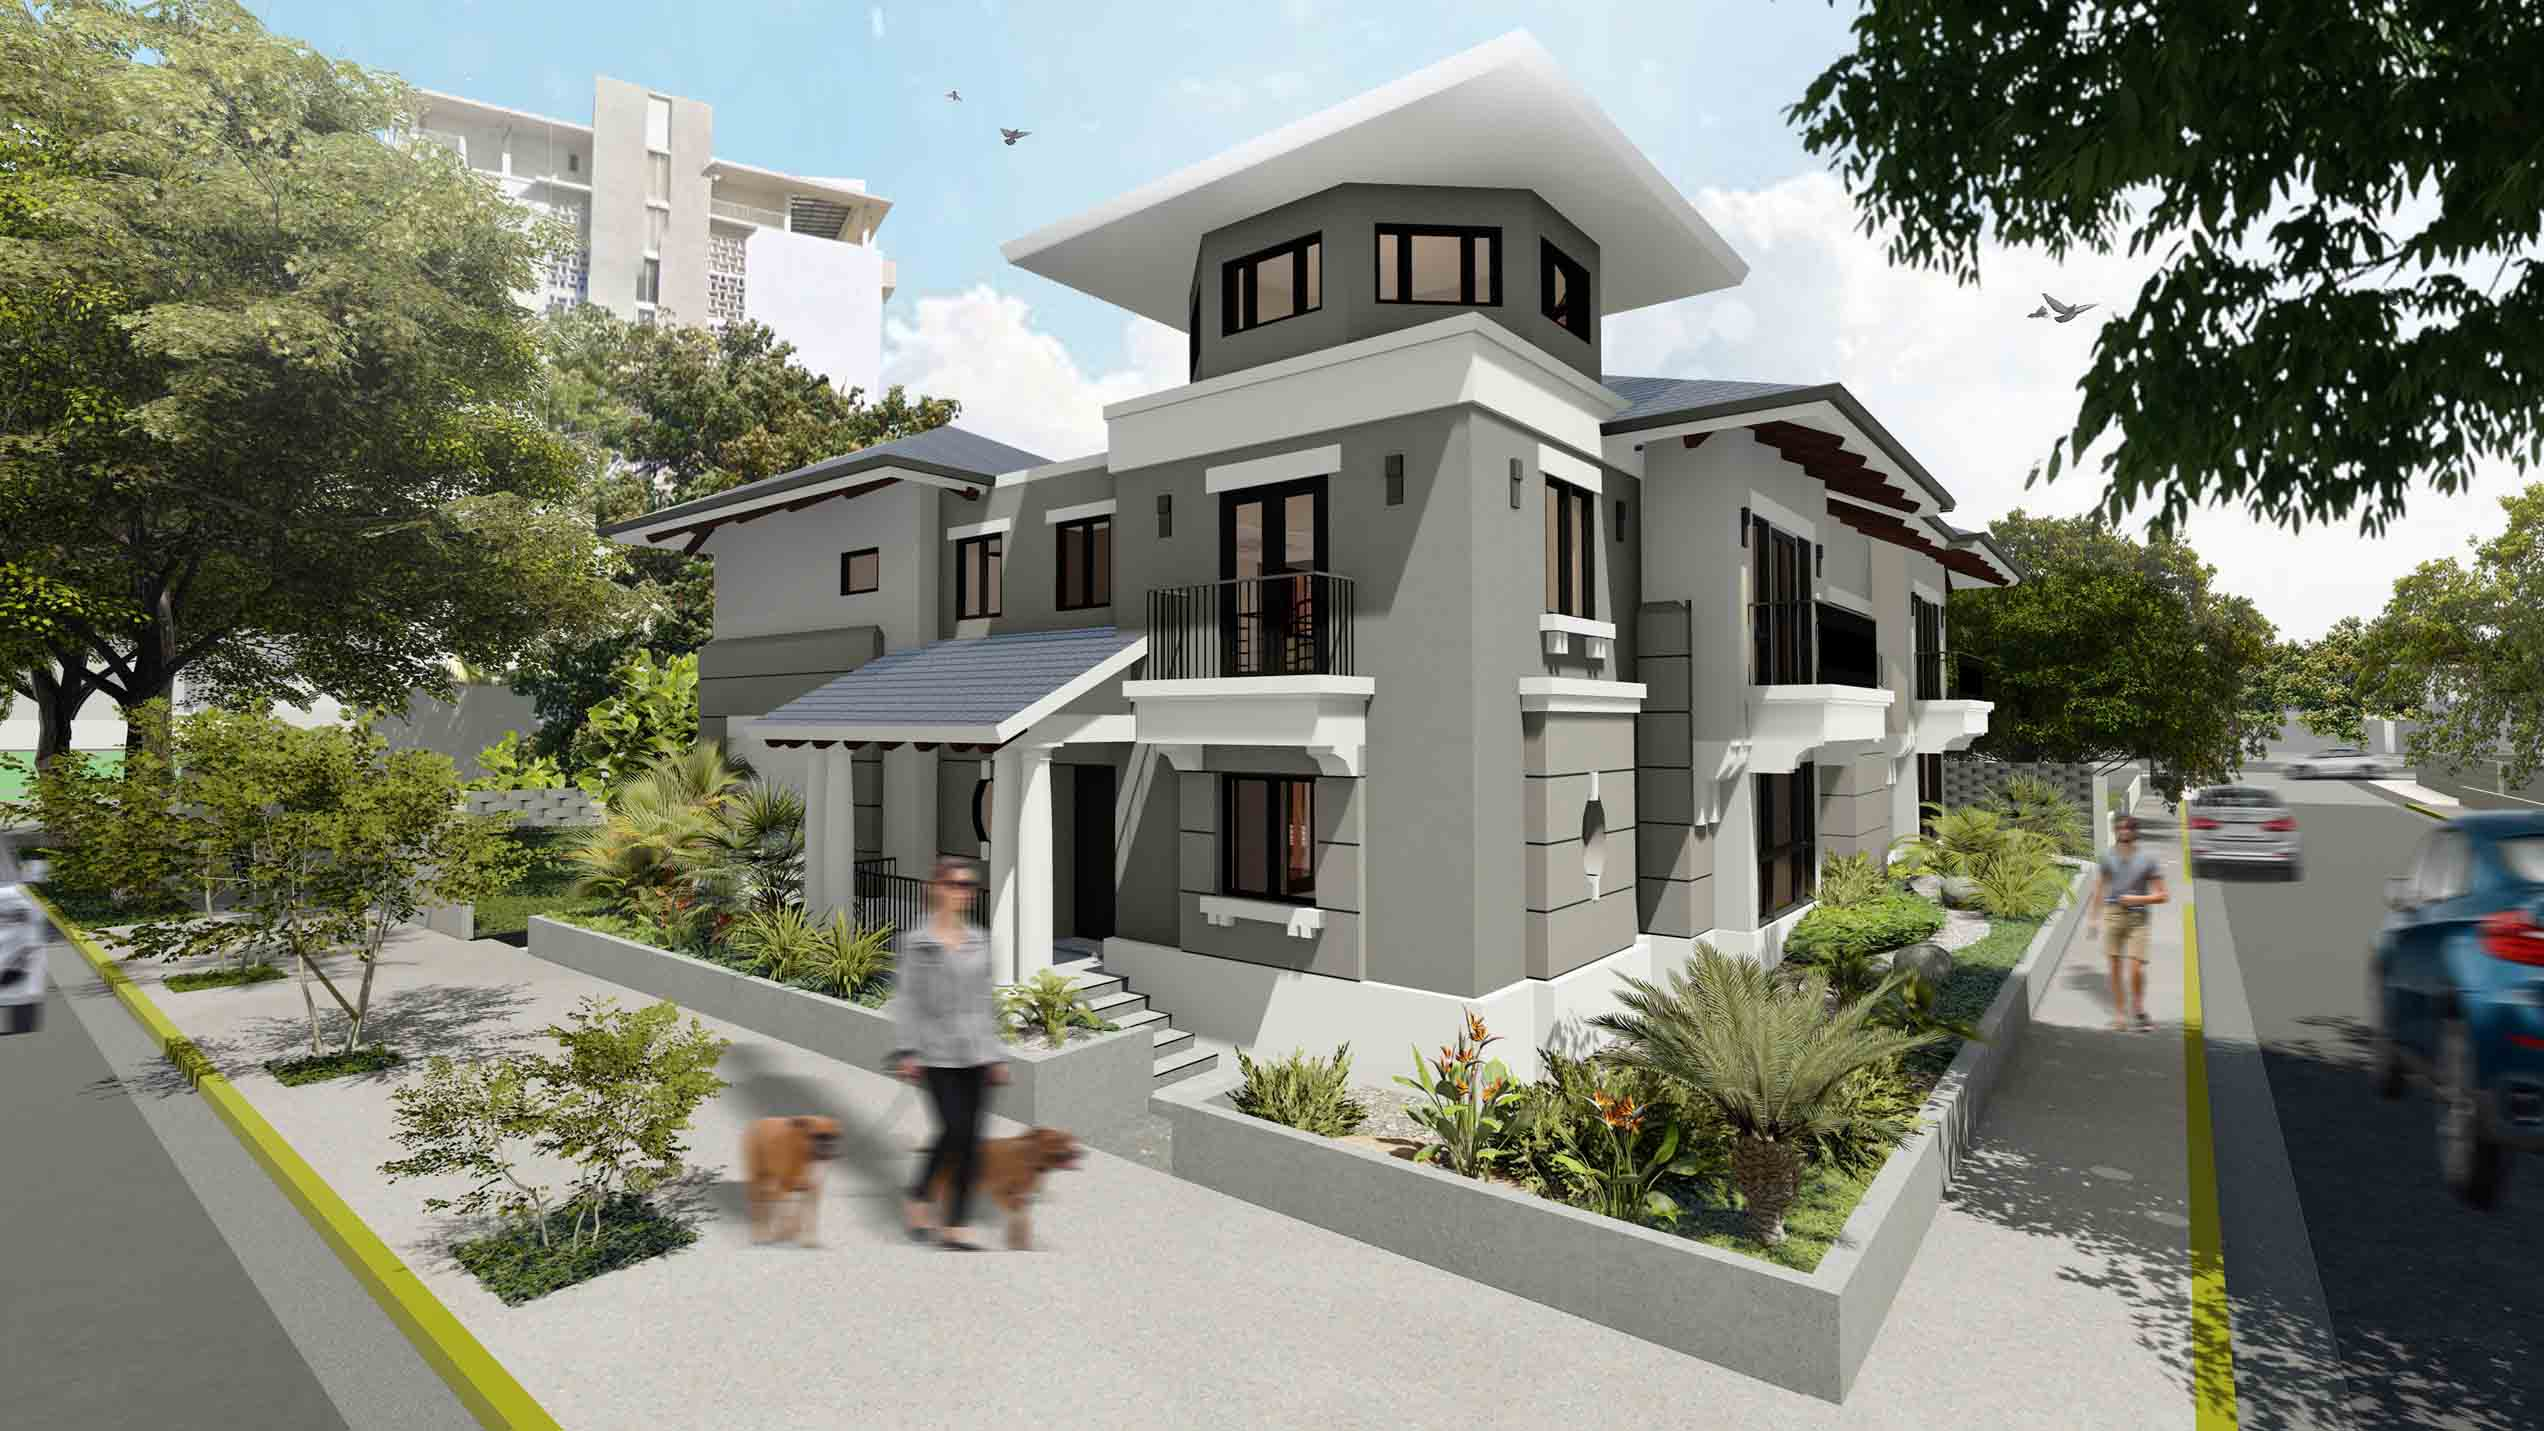 Render of the front view of the Luchetti 1220 private residence project by AD&V.